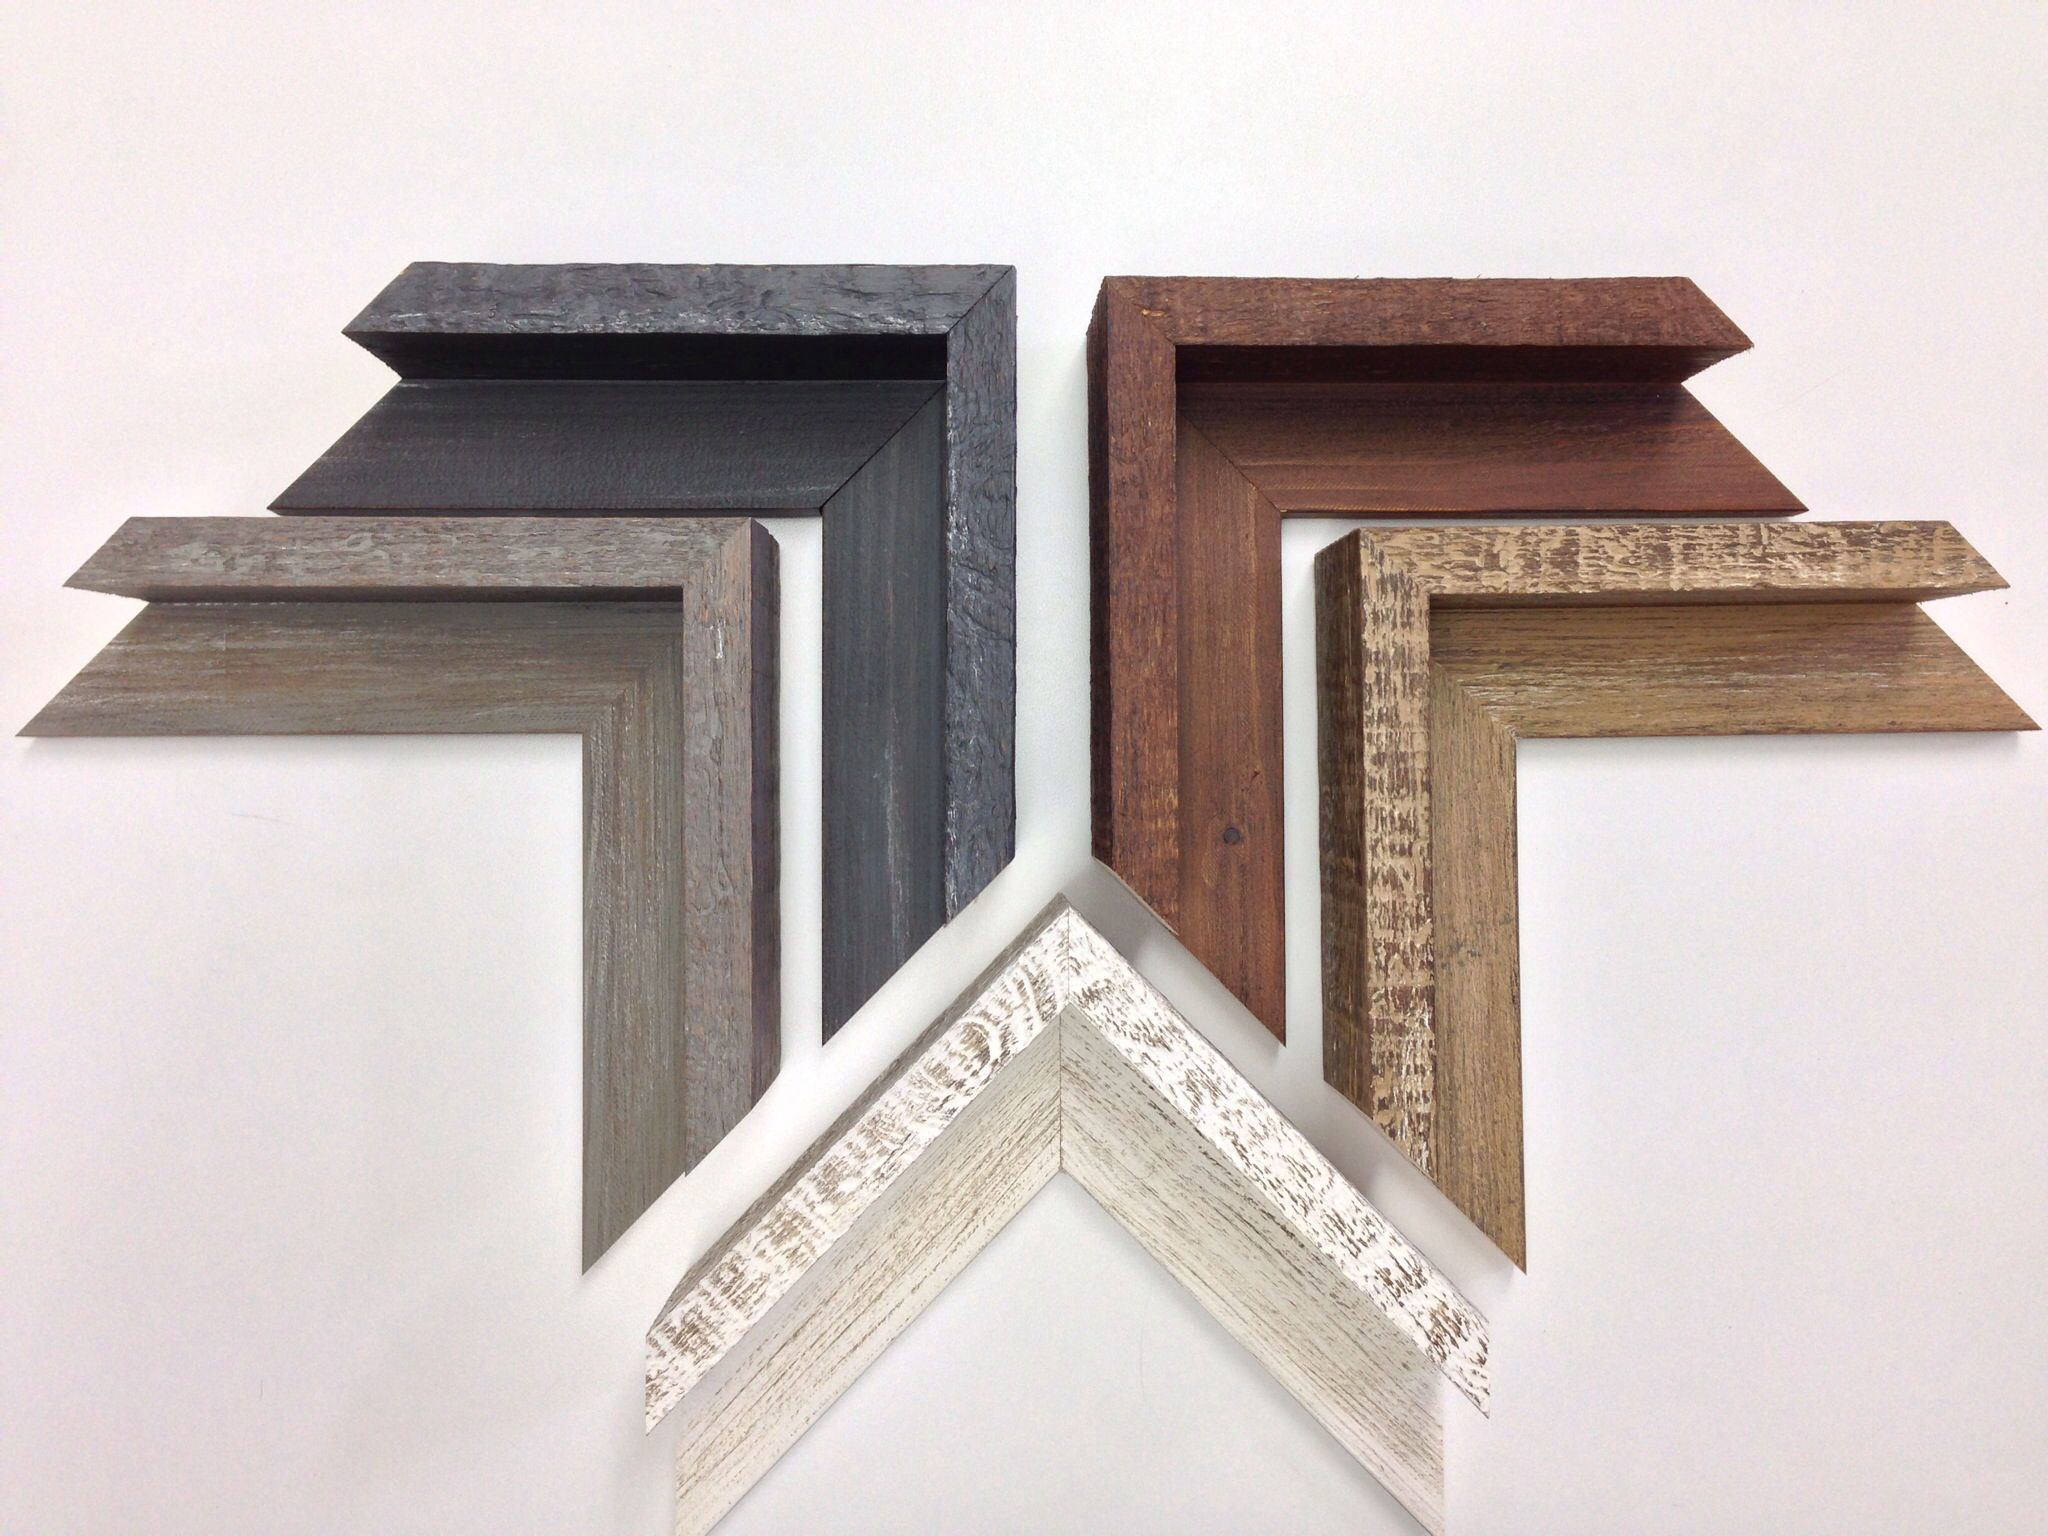 New Rustic Natural Wood Floater Frame Samples For 2 Deep Gallery Wrap Canvas Artwork Just Arrived Thes Custom Picture Frame Picture Frame Molding Art Display